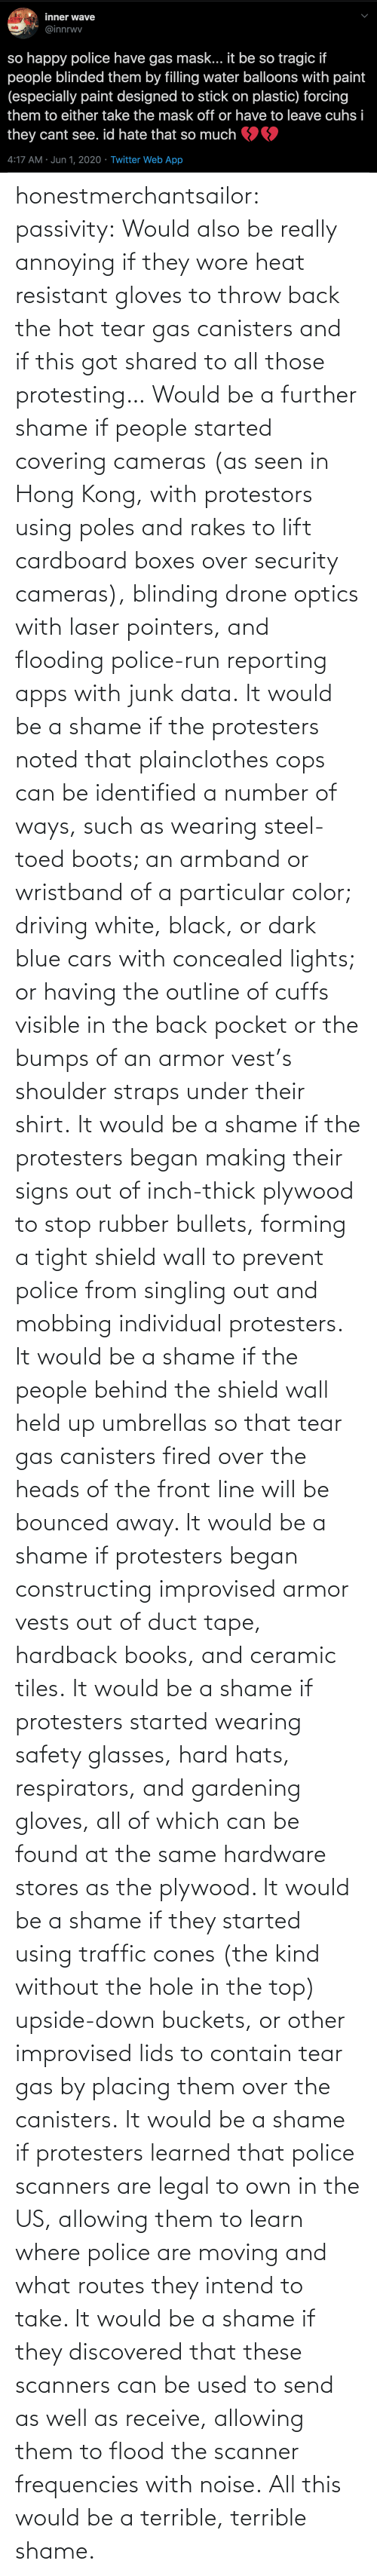 Traffic: honestmerchantsailor:  passivity: Would also be really annoying if they wore heat resistant gloves to throw back the hot tear gas canisters and if this got shared to all those protesting… Would be a further shame if people started covering cameras (as seen in Hong Kong, with protestors using poles and rakes to lift cardboard boxes over security cameras), blinding drone optics with laser pointers, and flooding police-run reporting apps with junk data. It would be a shame if the protesters noted that plainclothes cops can be identified a number of ways, such as wearing steel-toed boots; an armband or wristband of a particular color; driving white, black, or dark blue cars with concealed lights; or having the outline of cuffs visible in the back pocket or the bumps of an armor vest's shoulder straps under their shirt. It would be a shame if the protesters began making their signs out of inch-thick plywood to stop rubber bullets, forming a tight shield wall to prevent police from singling out and mobbing individual protesters. It would be a shame if the people behind the shield wall held up umbrellas so that tear gas canisters fired over the heads of the front line will be bounced away. It would be a shame if protesters began constructing improvised armor vests out of duct tape, hardback books, and ceramic tiles. It would be a shame if protesters started wearing safety glasses, hard hats, respirators, and gardening gloves, all of which can be found at the same hardware stores as the plywood. It would be a shame if they started using traffic cones (the kind without the hole in the top) upside-down buckets, or other improvised lids to contain tear gas by placing them over the canisters. It would be a shame if protesters learned that police scanners are legal to own in the US, allowing them to learn where police are moving and what routes they intend to take. It would be a shame if they discovered that these scanners can be used to send as well as receive, allowing them to flood the scanner frequencies with noise. All this would be a terrible, terrible shame.